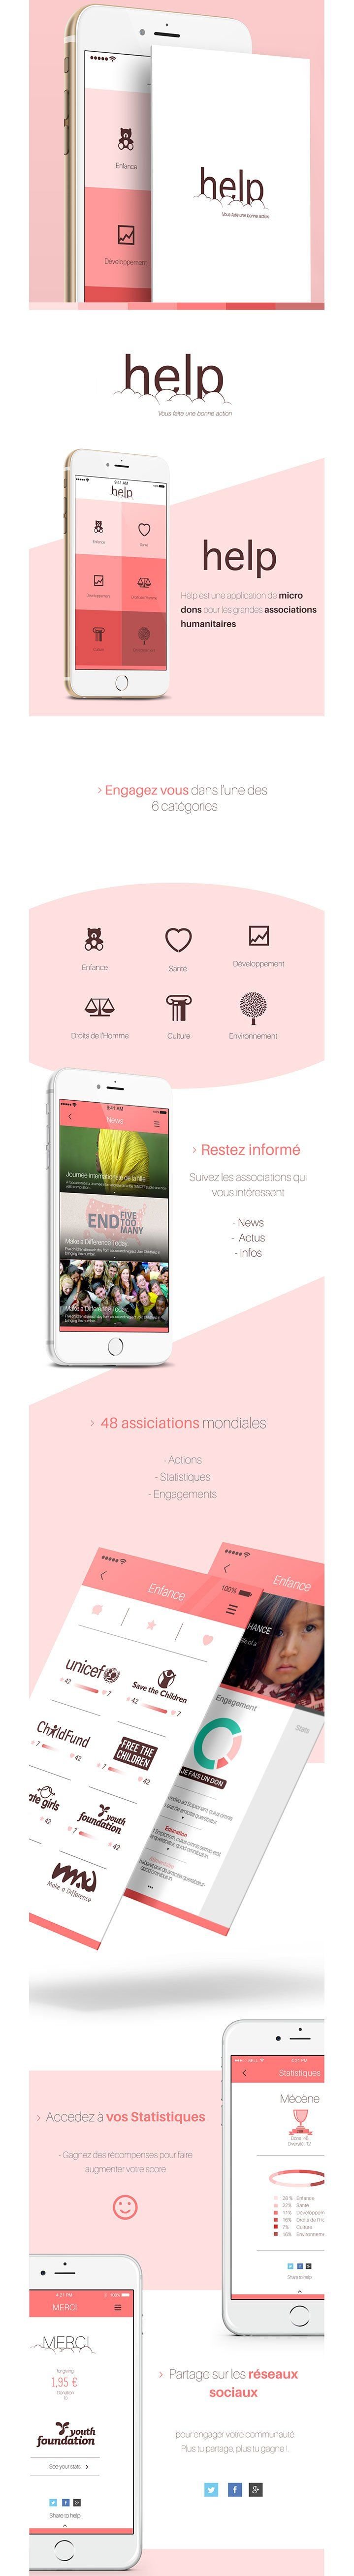 Mobile App / Flat Design app ios iphone smartphone #help #mobile  #ui. If you like UX, design, or design thinking, check out theuxblog.com